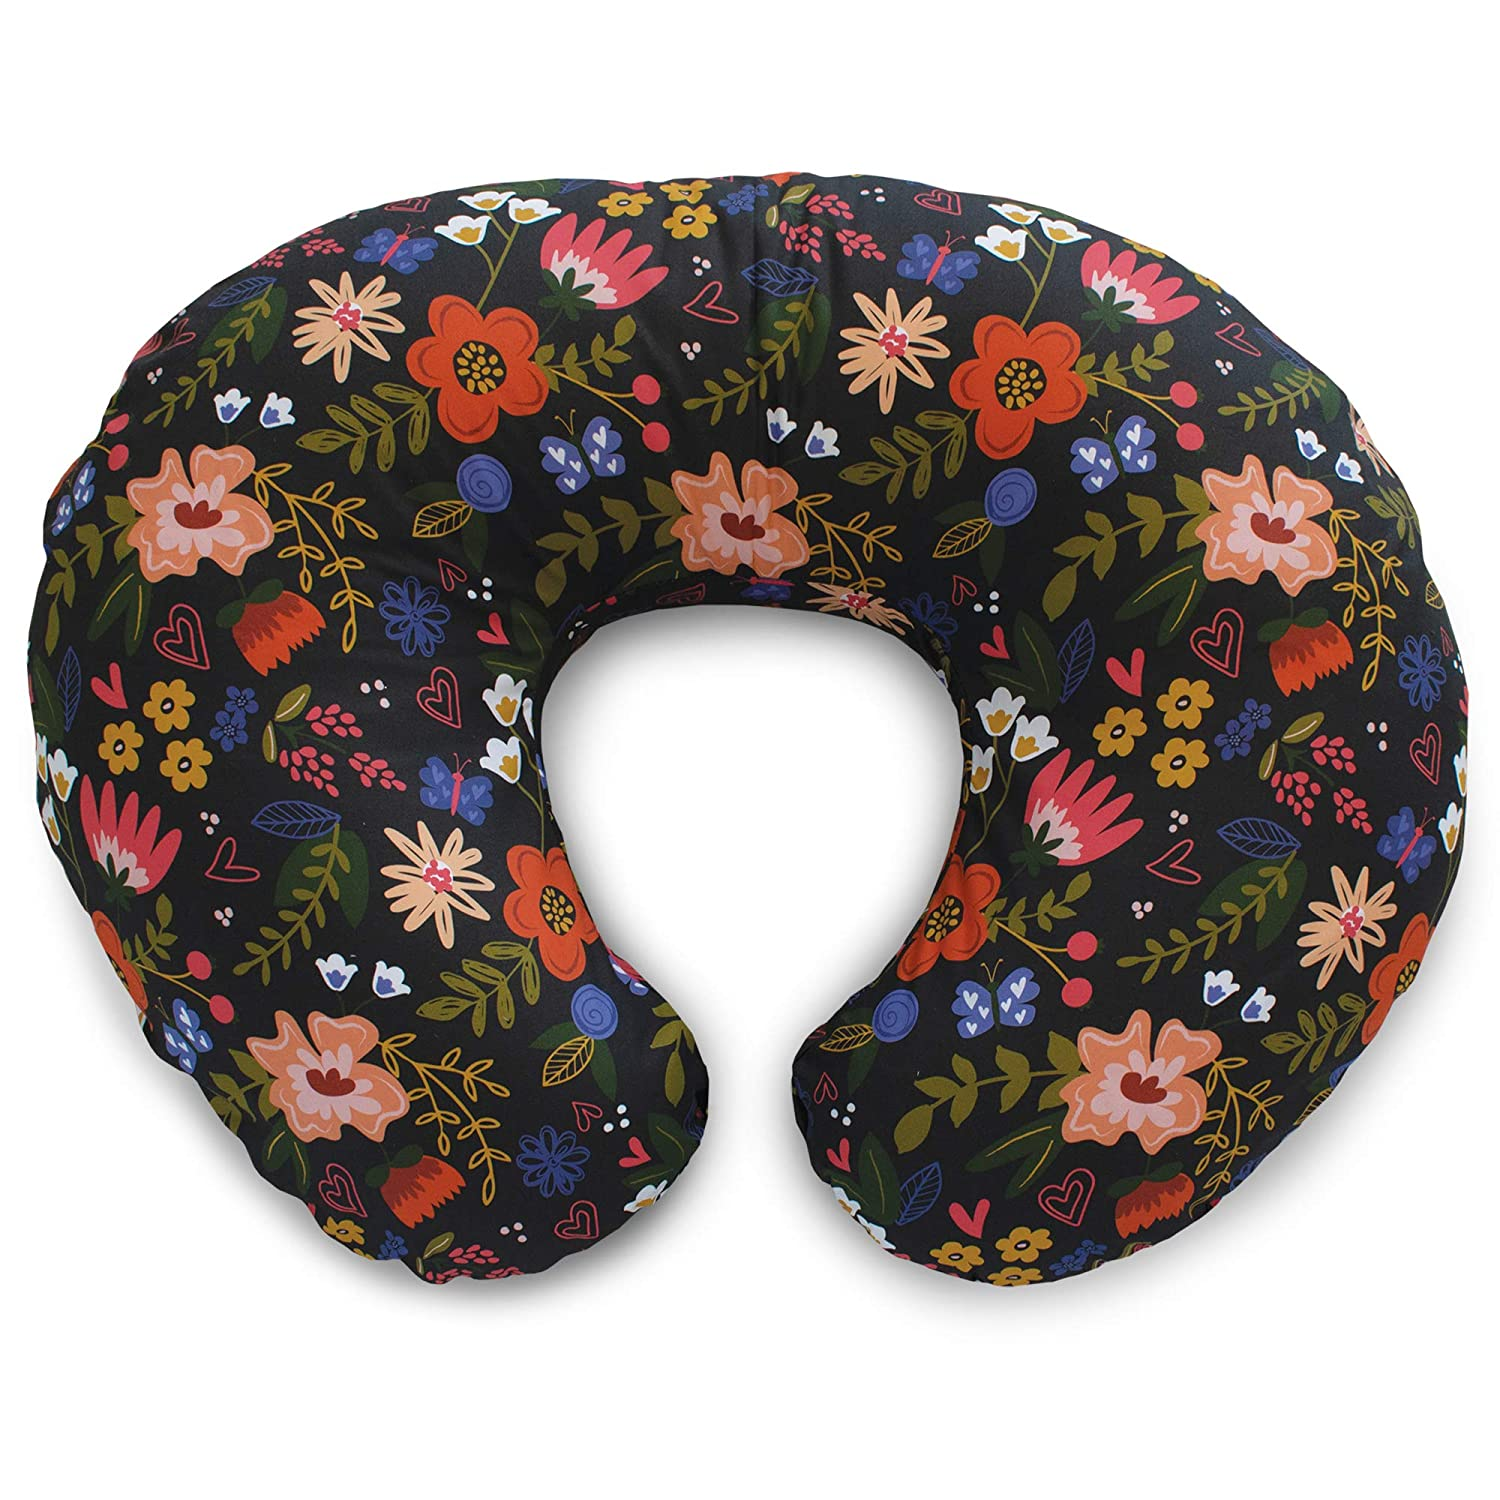 Boppy Cotton Blend Nursing Pillow and Positioner Slipcover, Black Floral The Boppy Company 3100491K 6PK